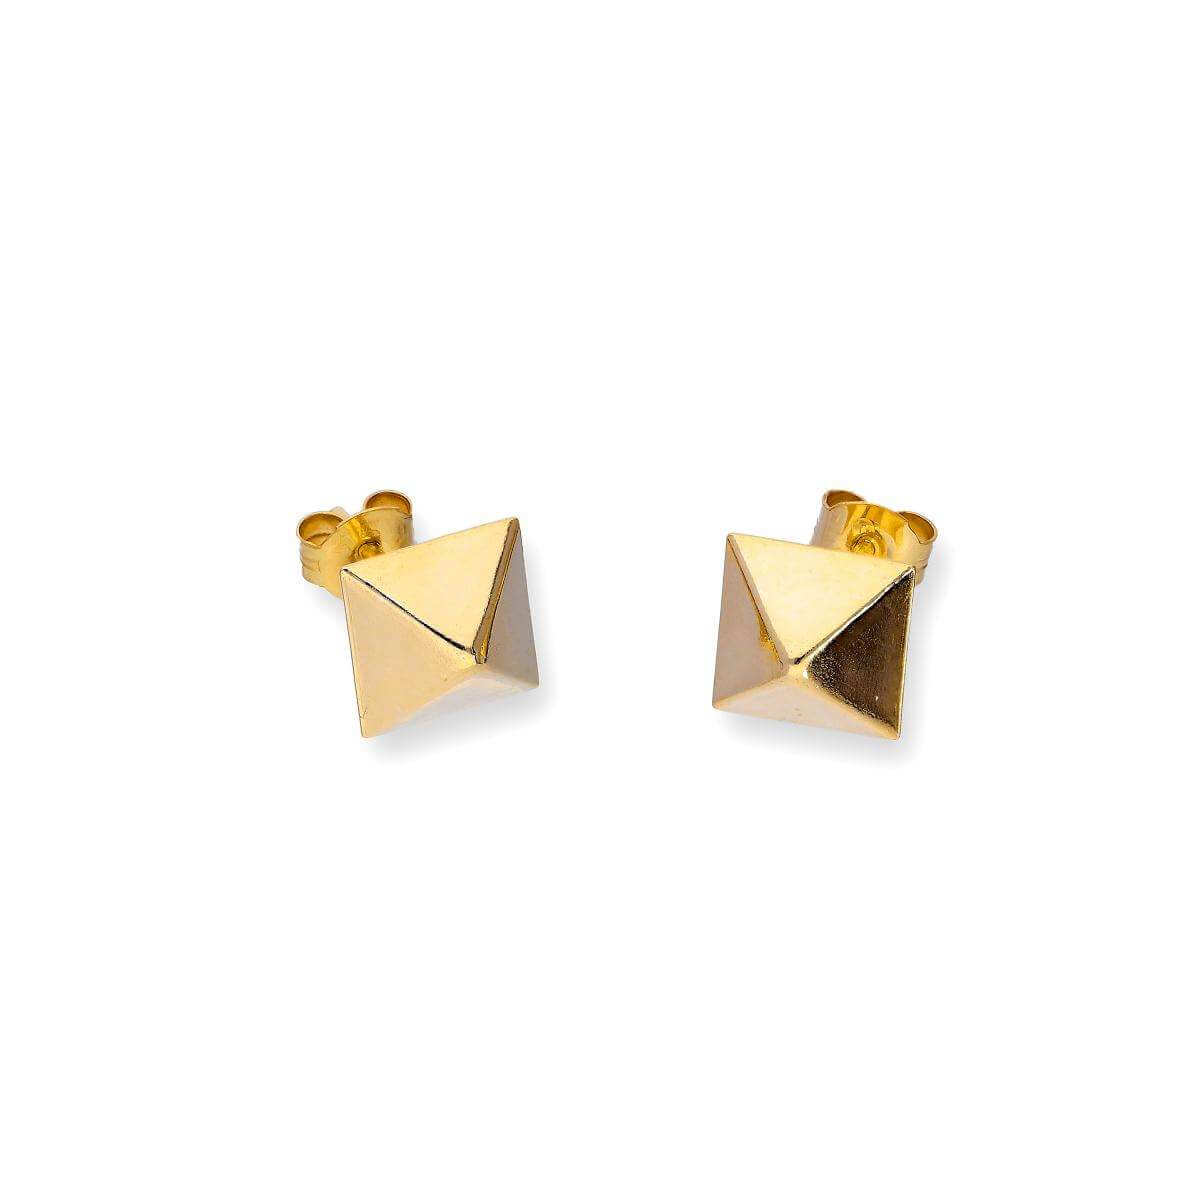 9ct Gold Square Pyramid Stud Earrings